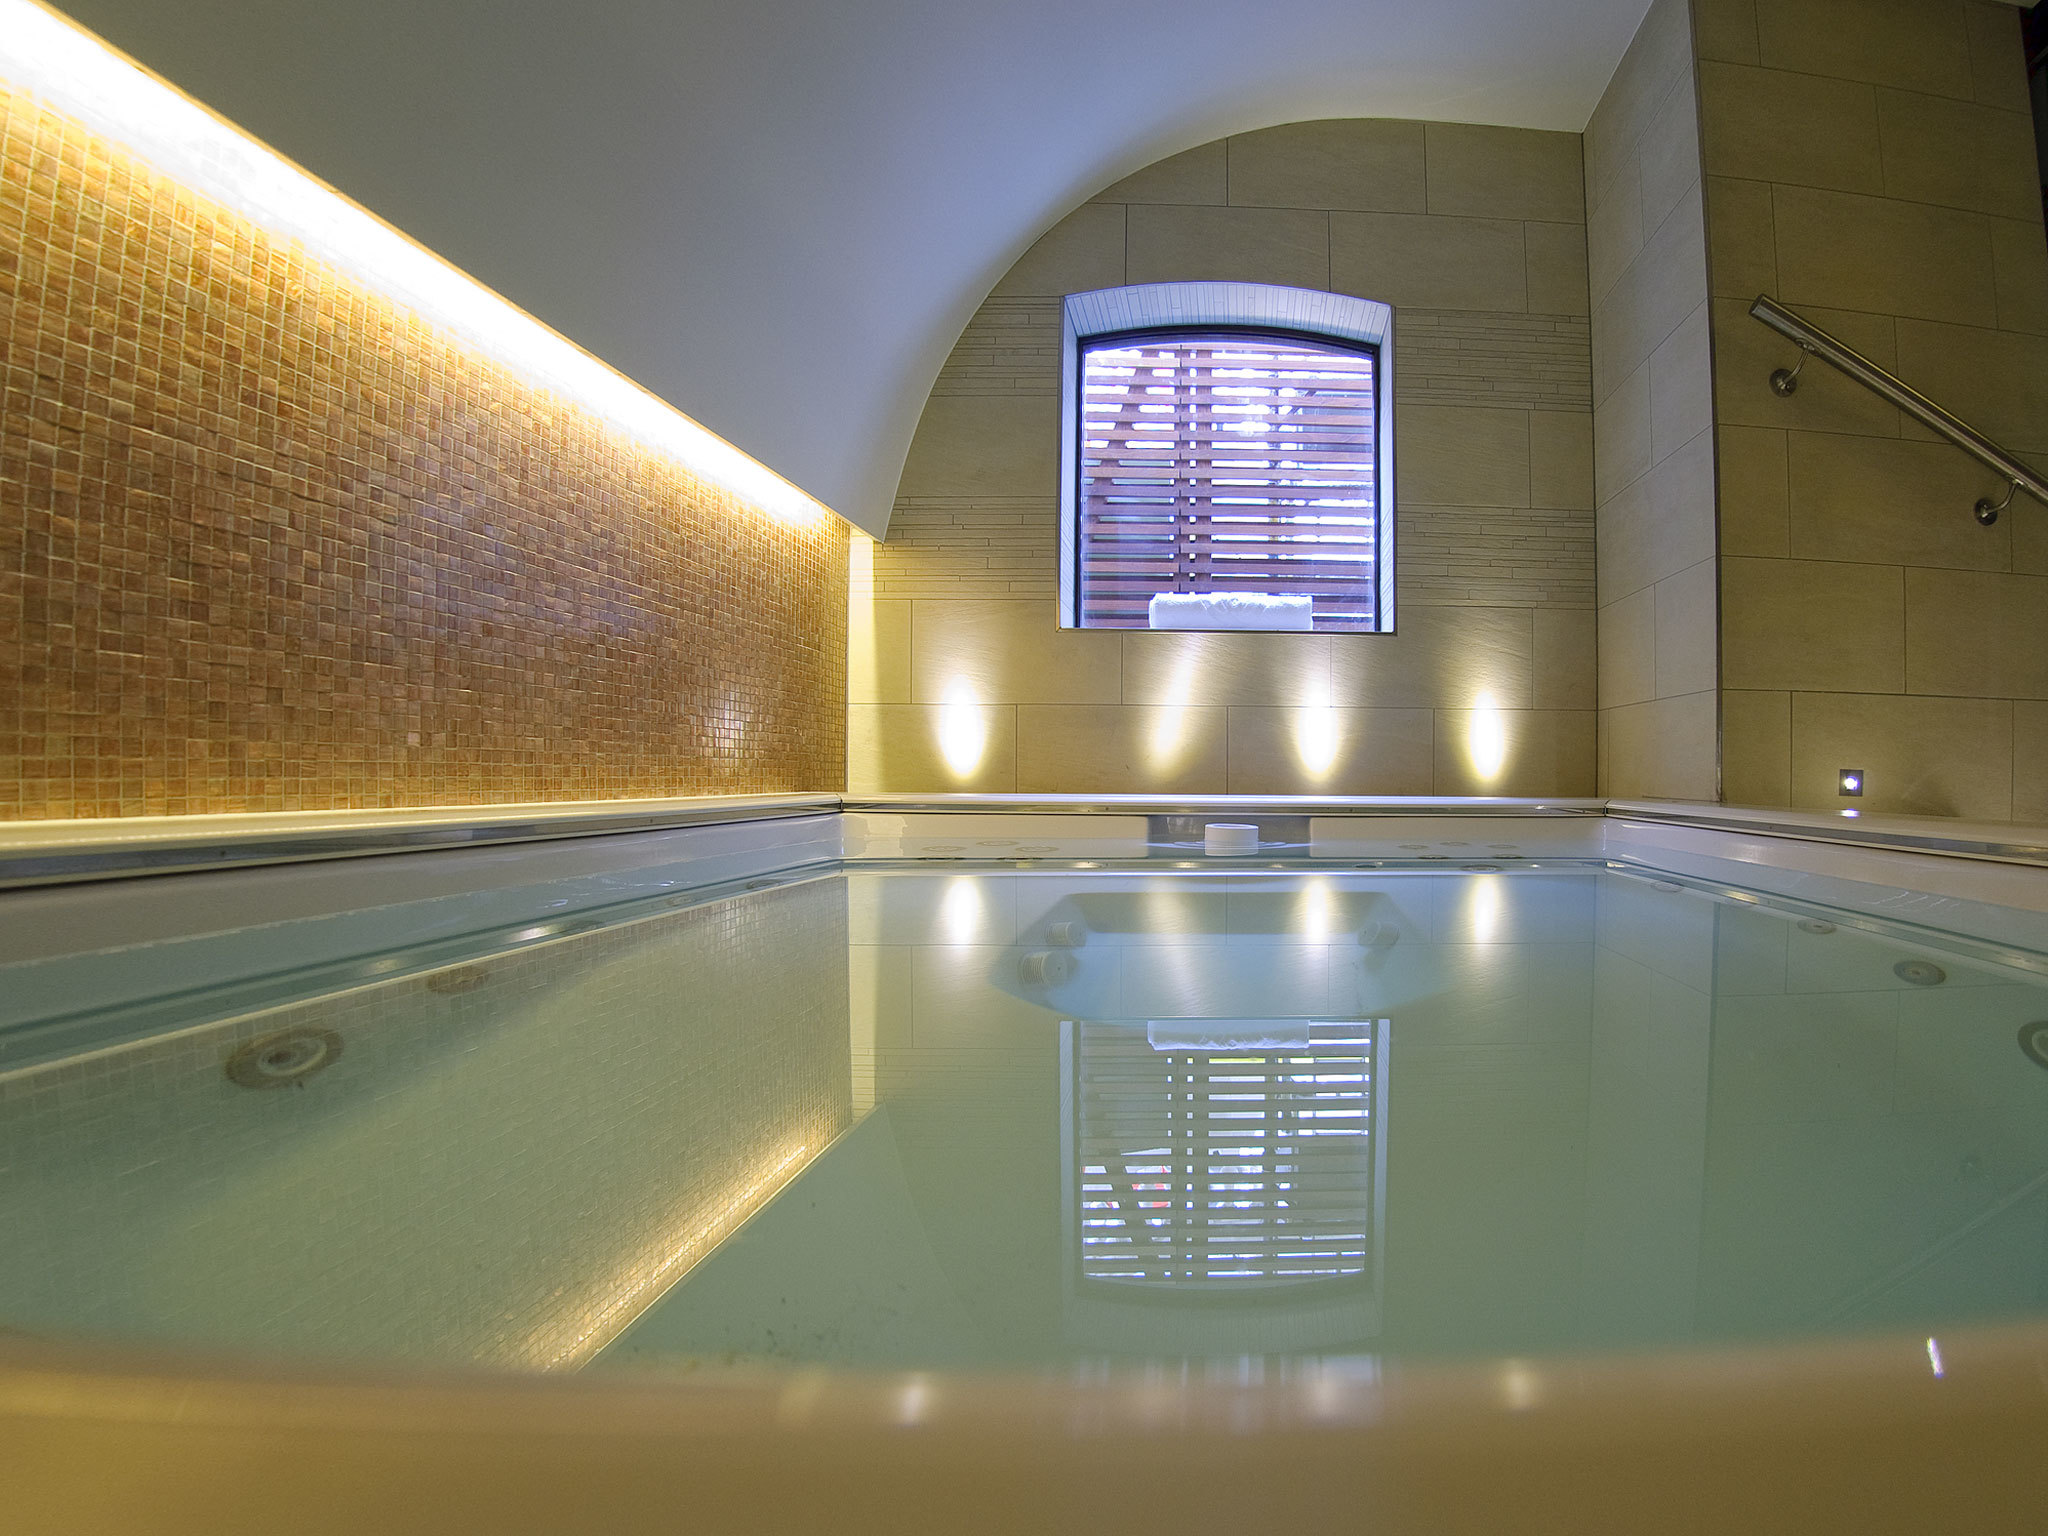 London hotels with jacuzzis and hot tubs - Time Out London